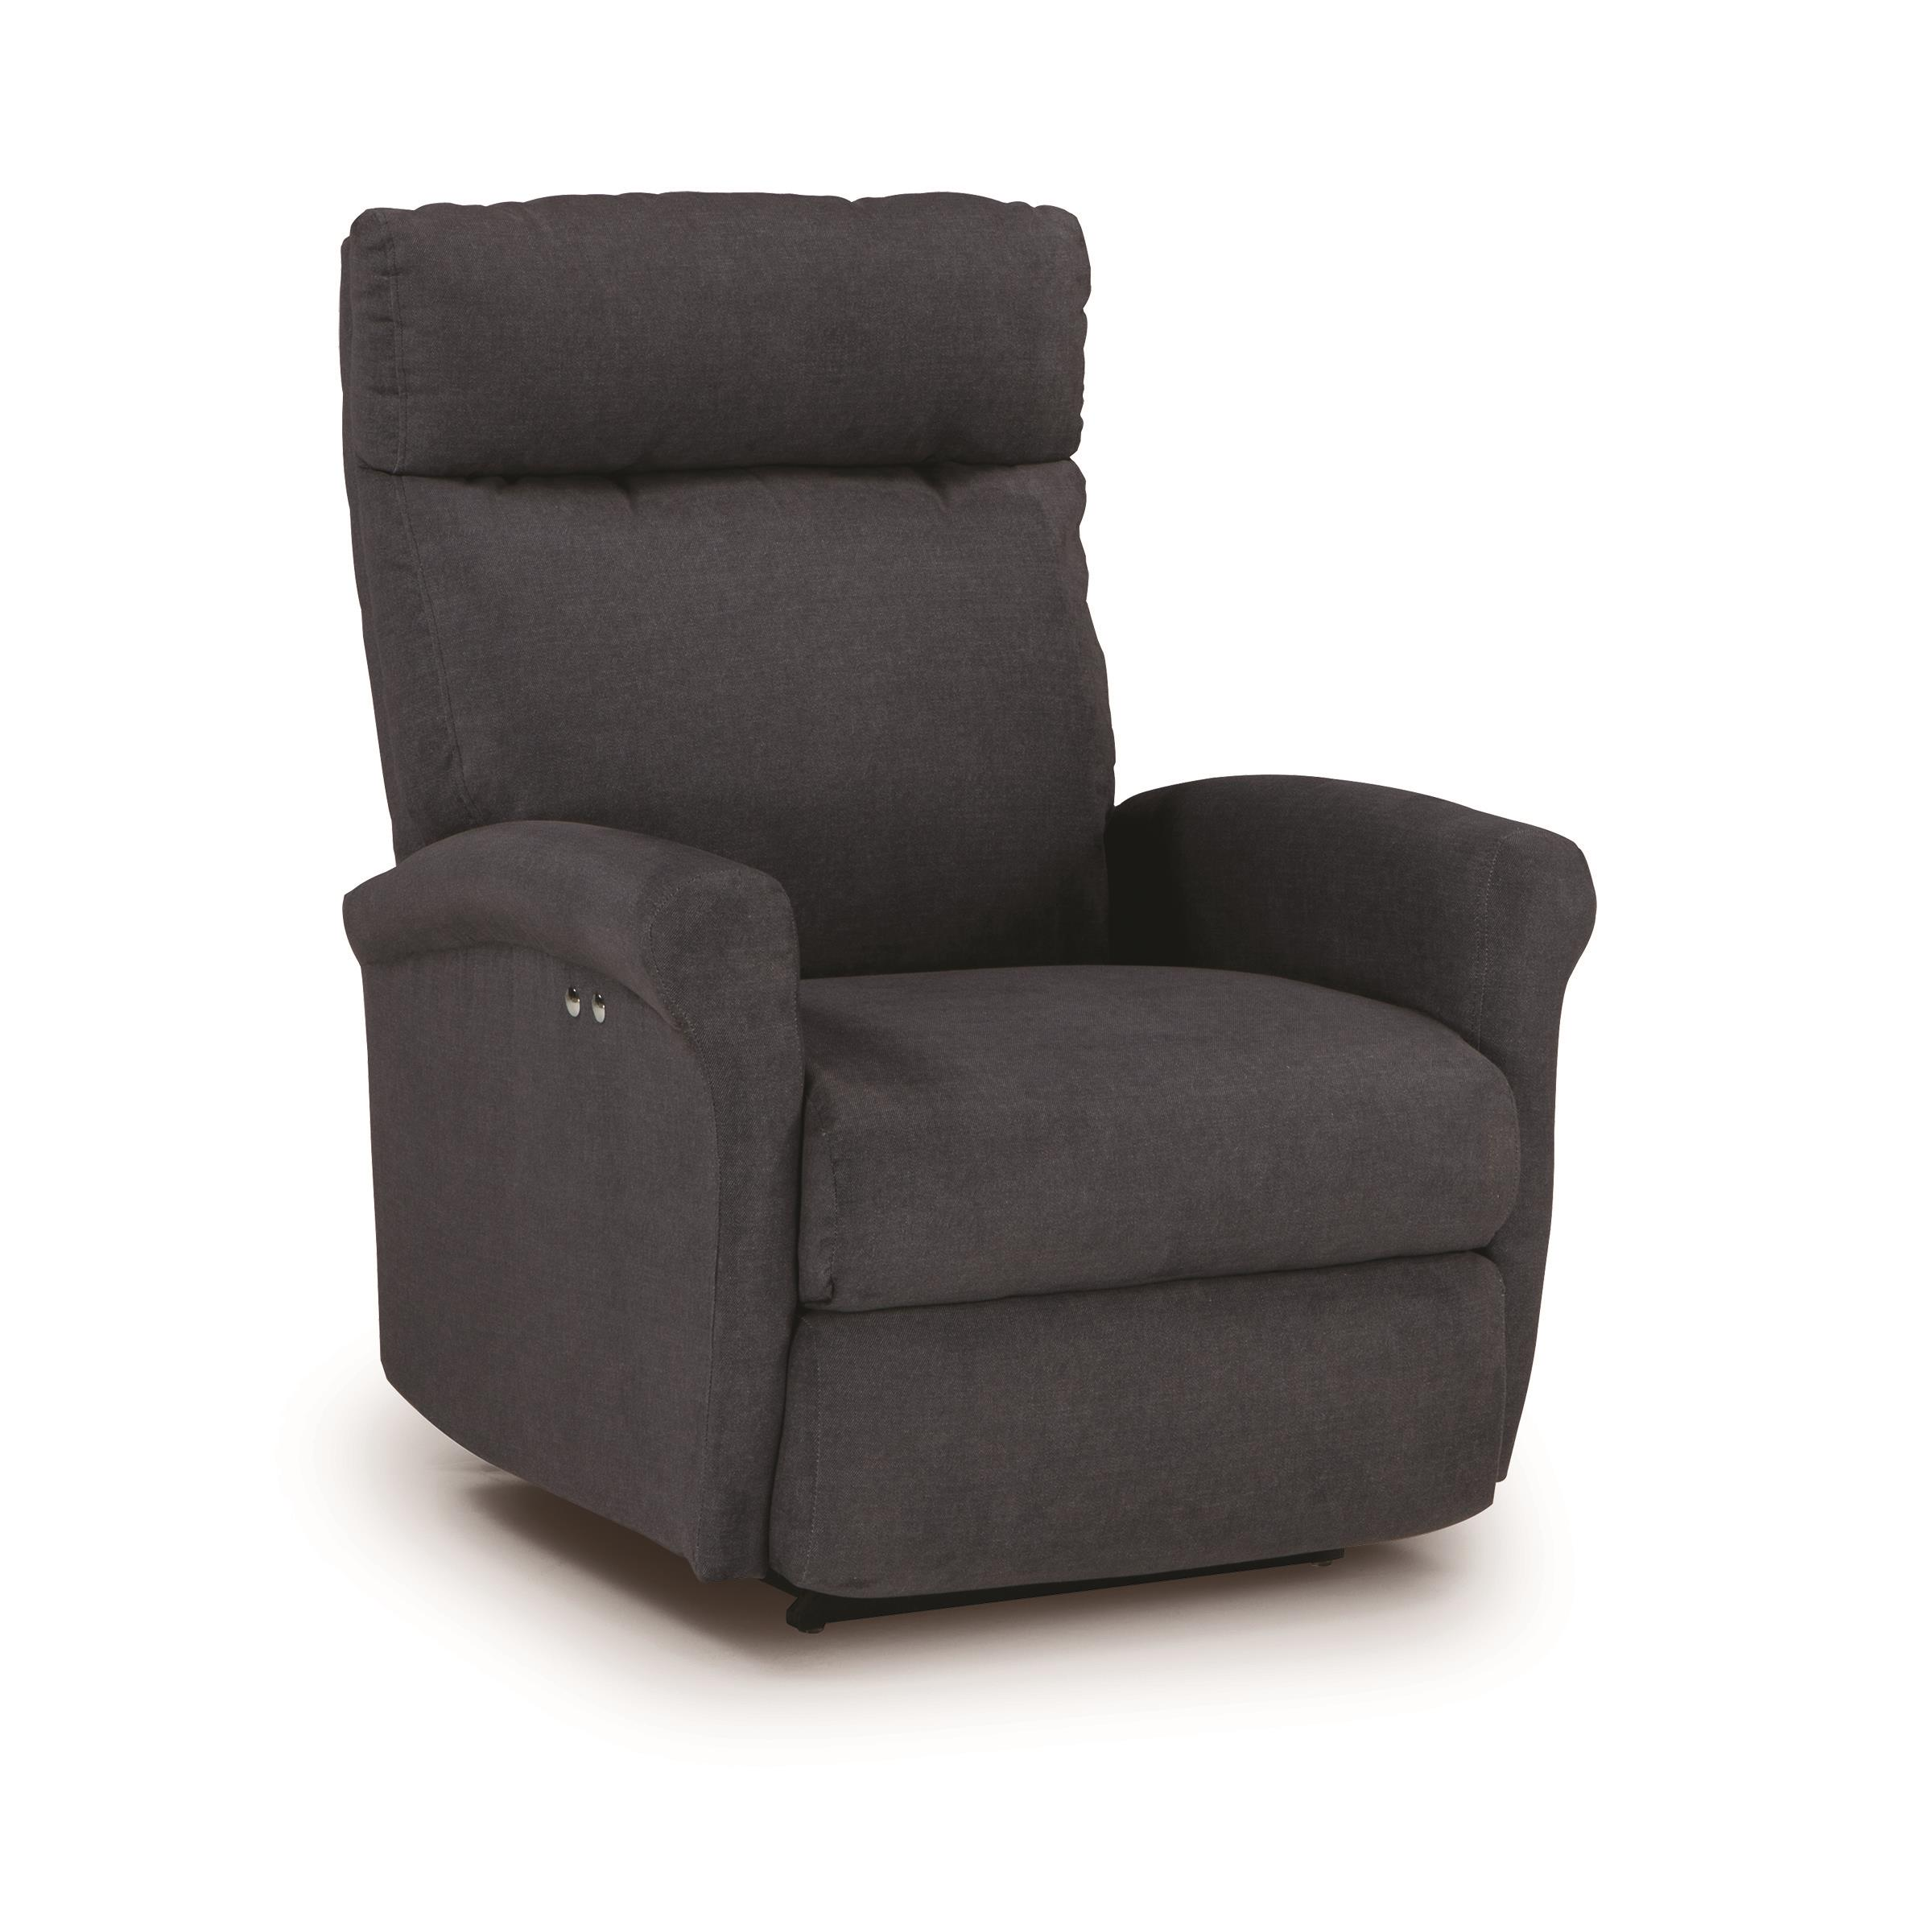 Best Home Furnishings Recliners - Petite Power Rocking Recliner - Item Number: 1NP07-21472